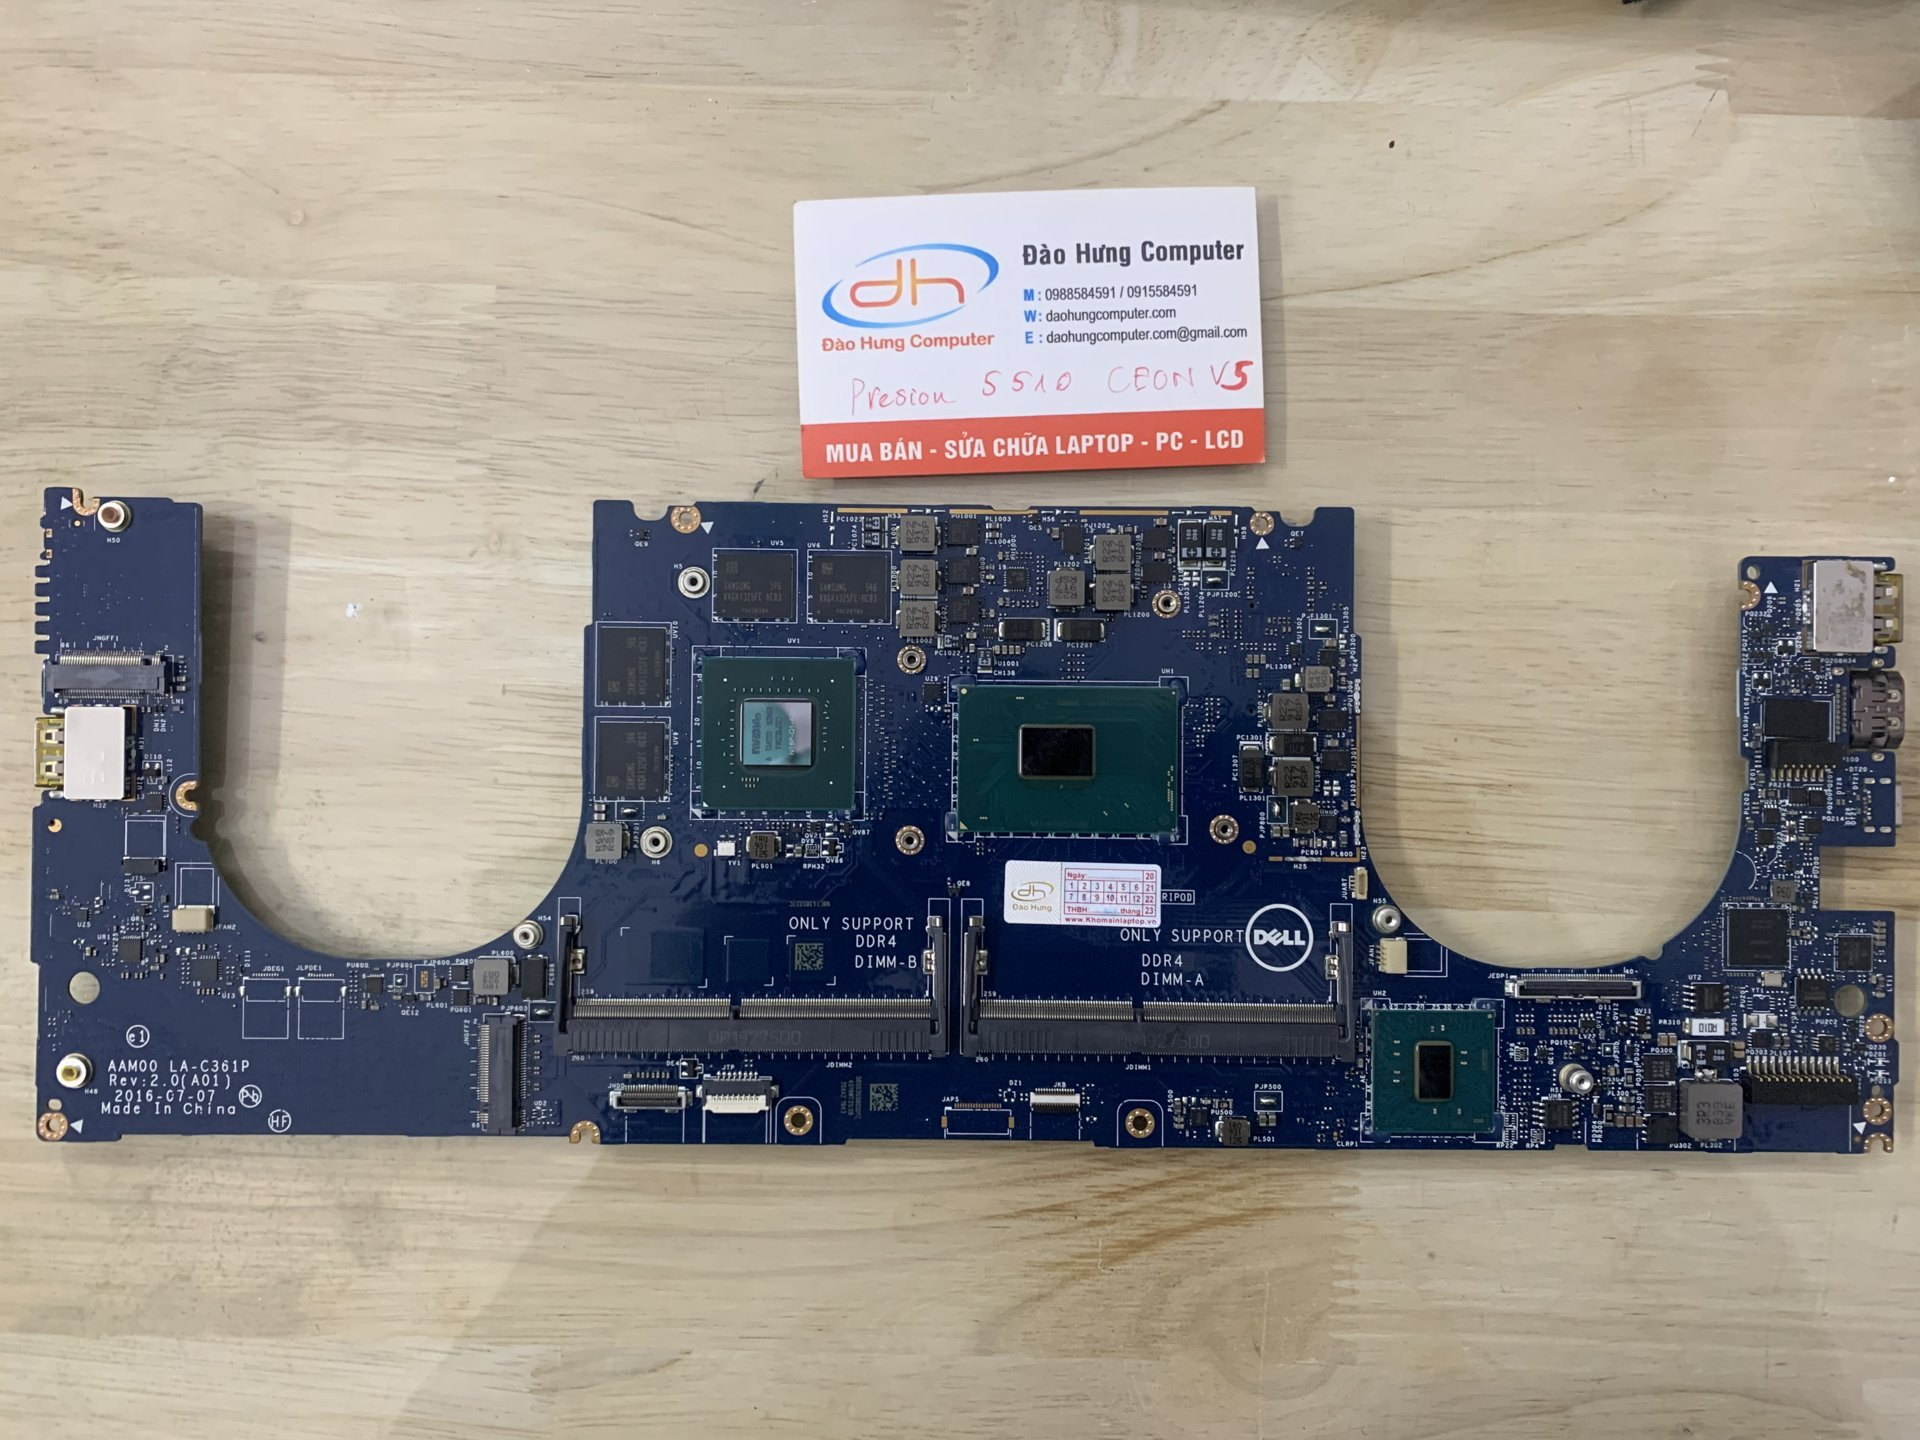 mainboard-dell-precision-5510-chip-xeon-e3-1505-v5